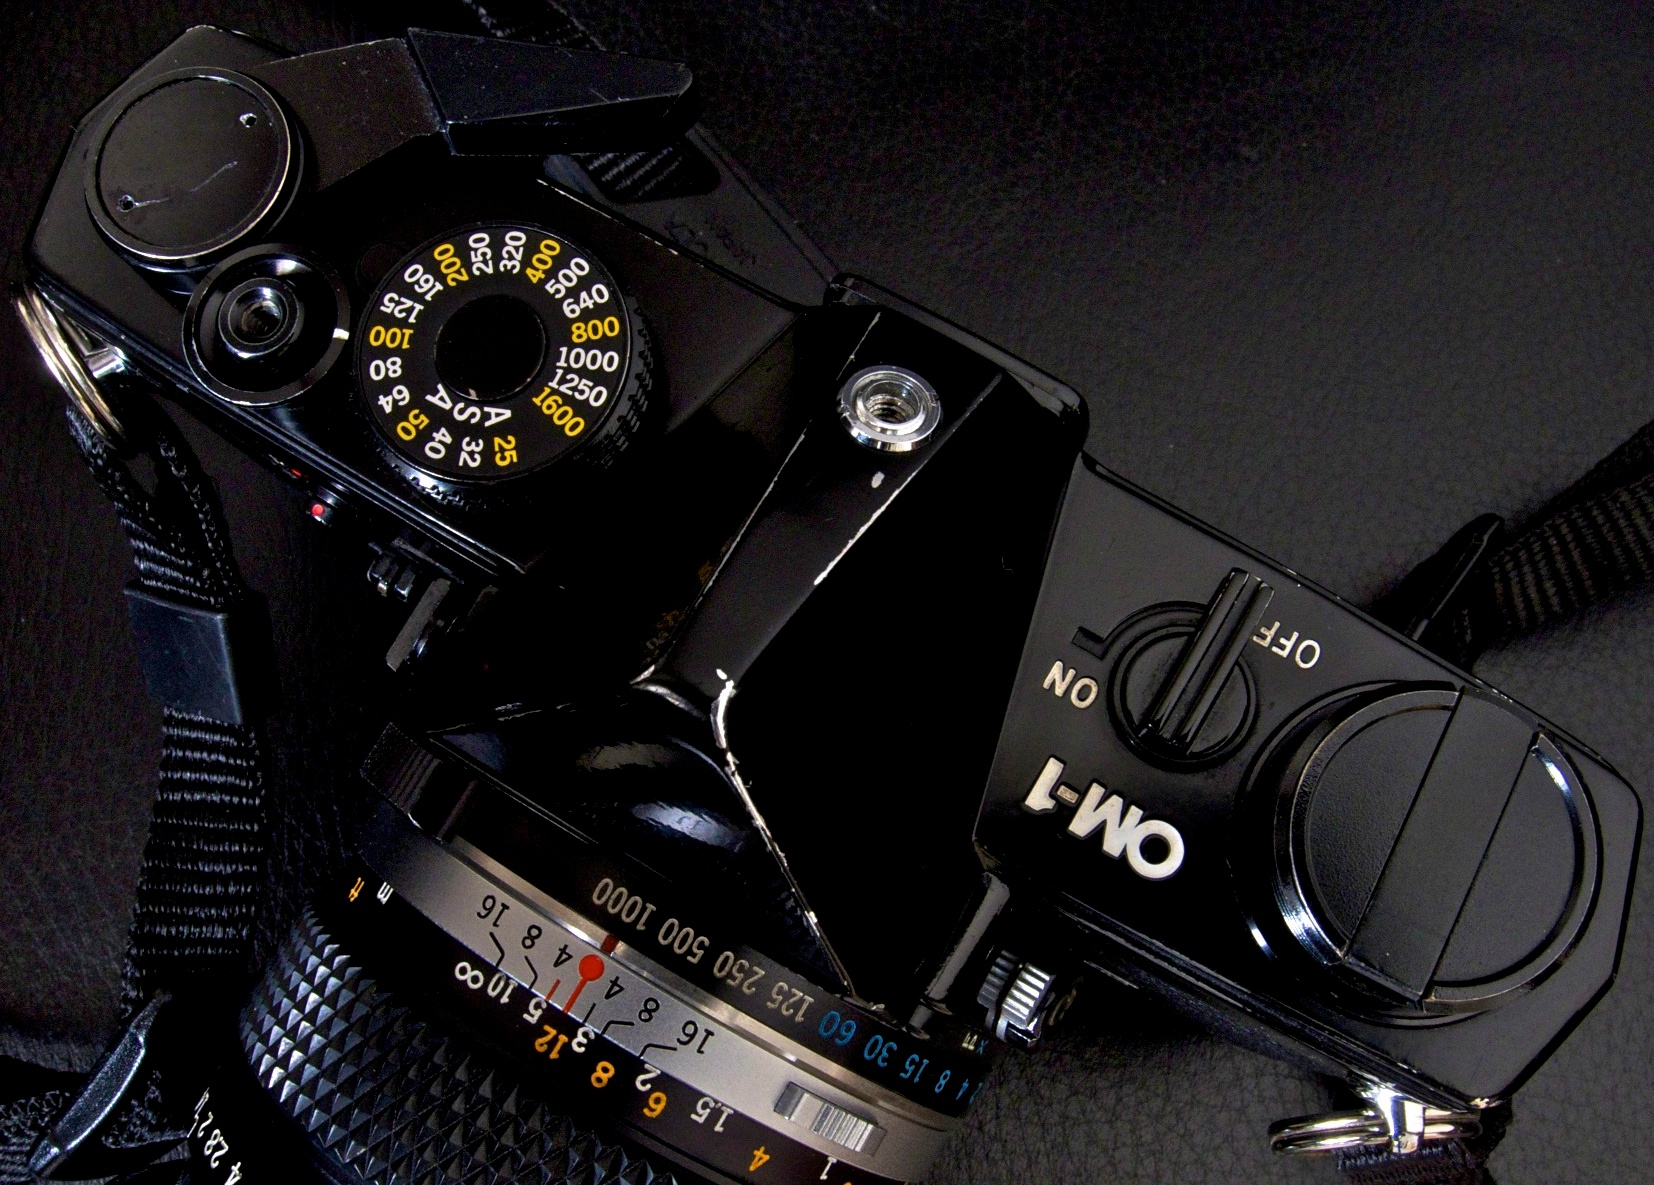 Wind on, threaded shutter release, ASA dial, detachable hot-shoe, on-off switch, foldaway rewind lever on the top plate and speed dial around lens throat...all you had to do was think, not remember where everything was.....